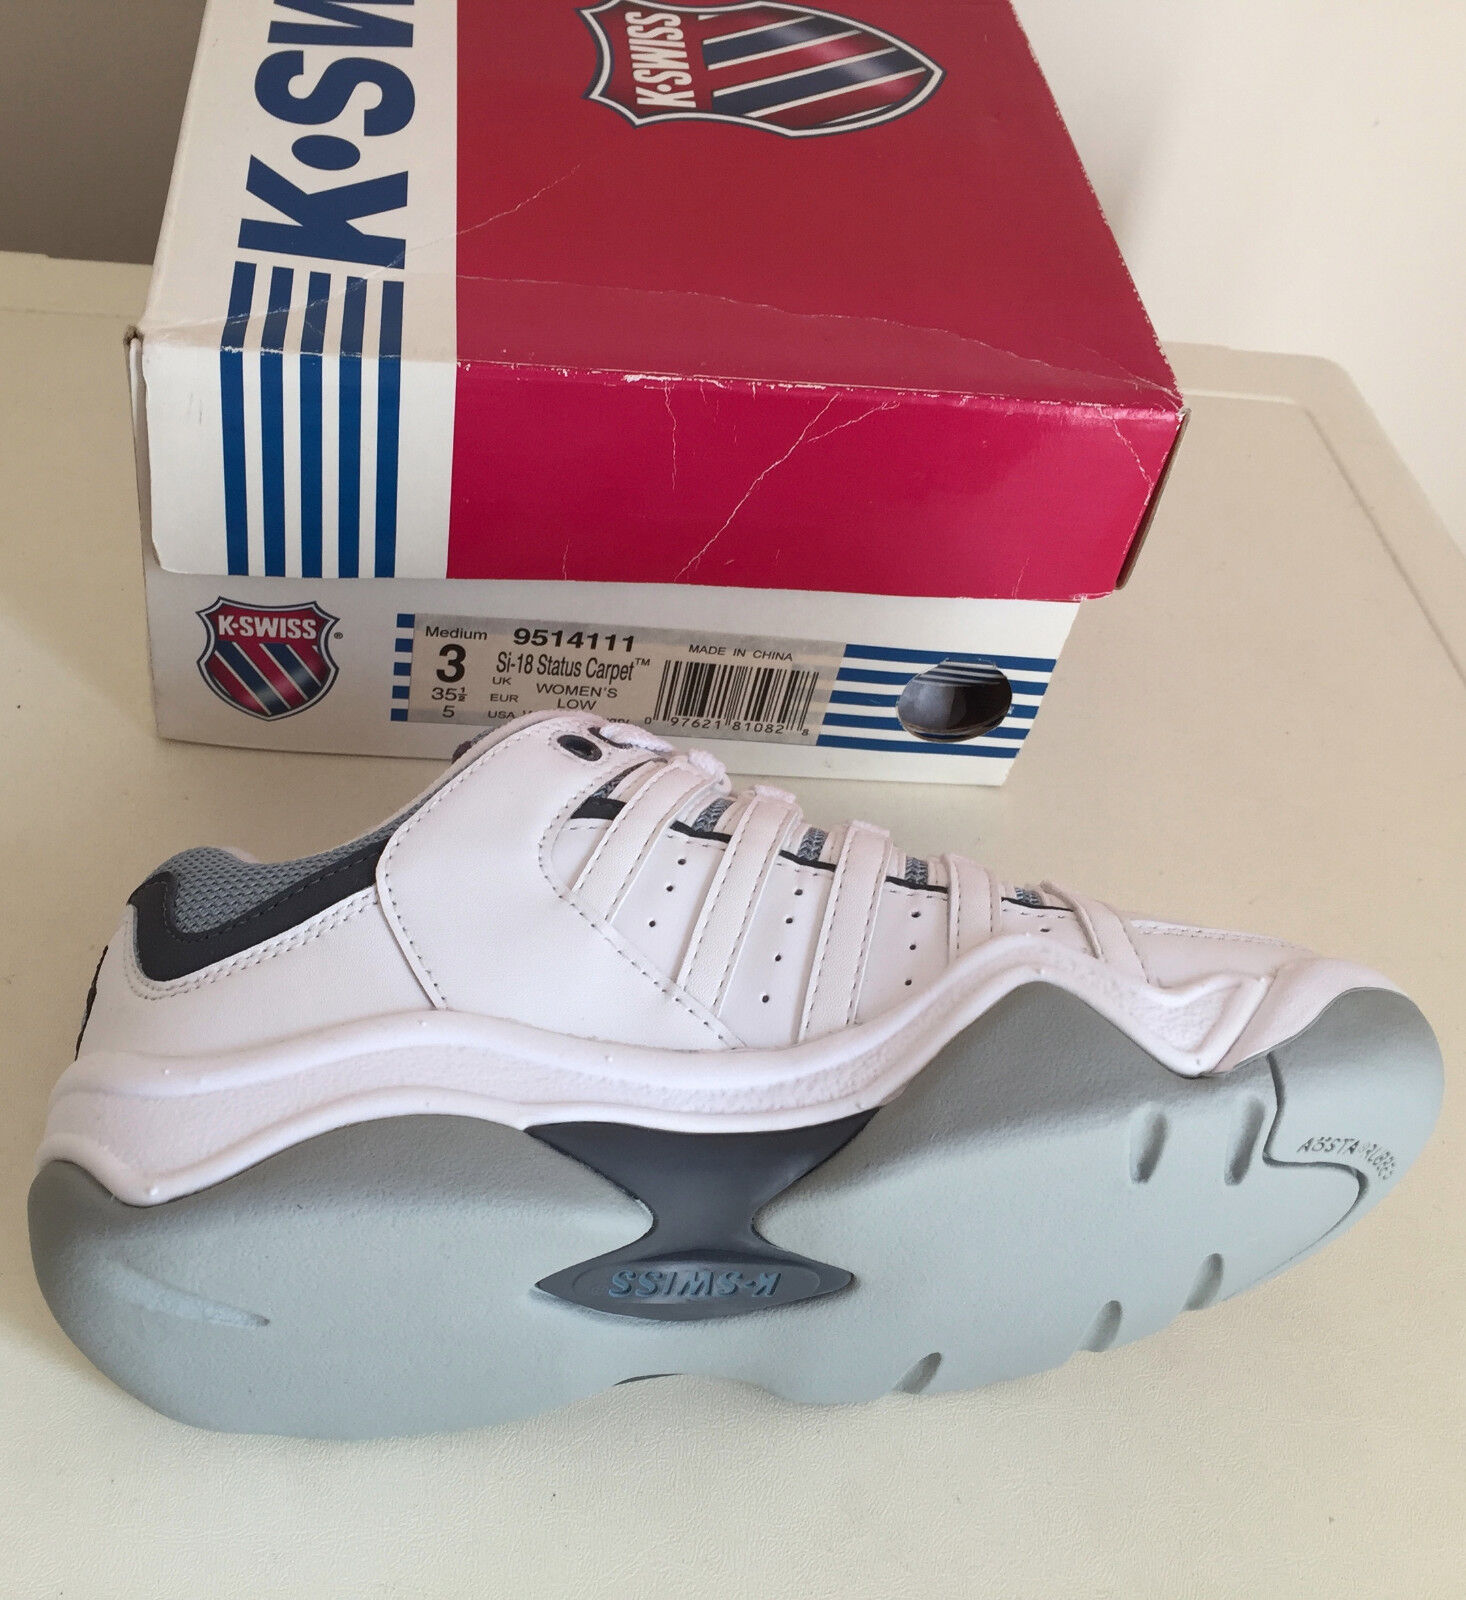 K-Swiss Donna Si-18 Status Carpet Donna UK Trainers Size  3 UK Donna NEW ade00f